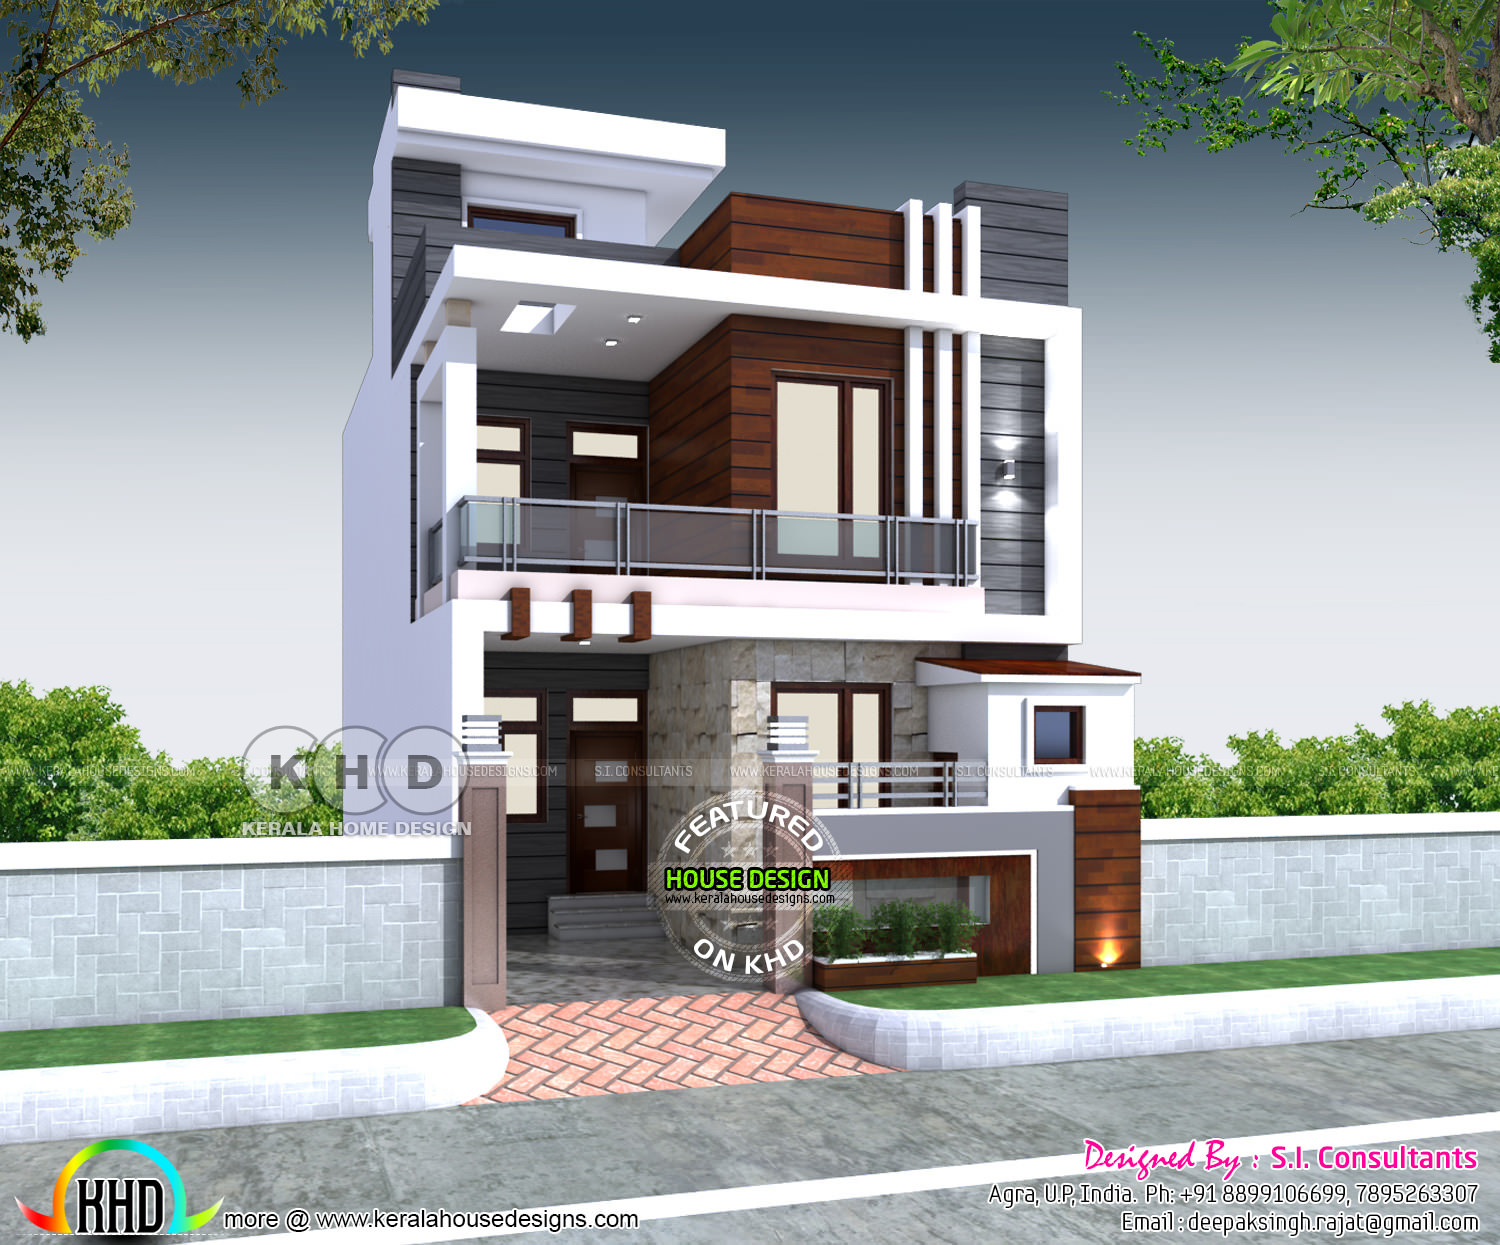 23'x 55' house plan with 3 bedrooms | Kerala home design ... Kerala House Designs Floor Plans on kerala luxury house plans, small house plans, kerala house design plans, minimalist home floor plans, kerala home, houses and floor plans, house layout plans, narrow lot house plans, kerala beach house plans, modern two-story house plans, ranch modular home floor plans, maisonette house plans, 2 story modular house plans, affordable 2 bedroom house plans, house beautiful house plans, blueprints for house foundation plans, new design house plans, kerala house plans 1500 square feet, kerala 3 bedroom house plans,